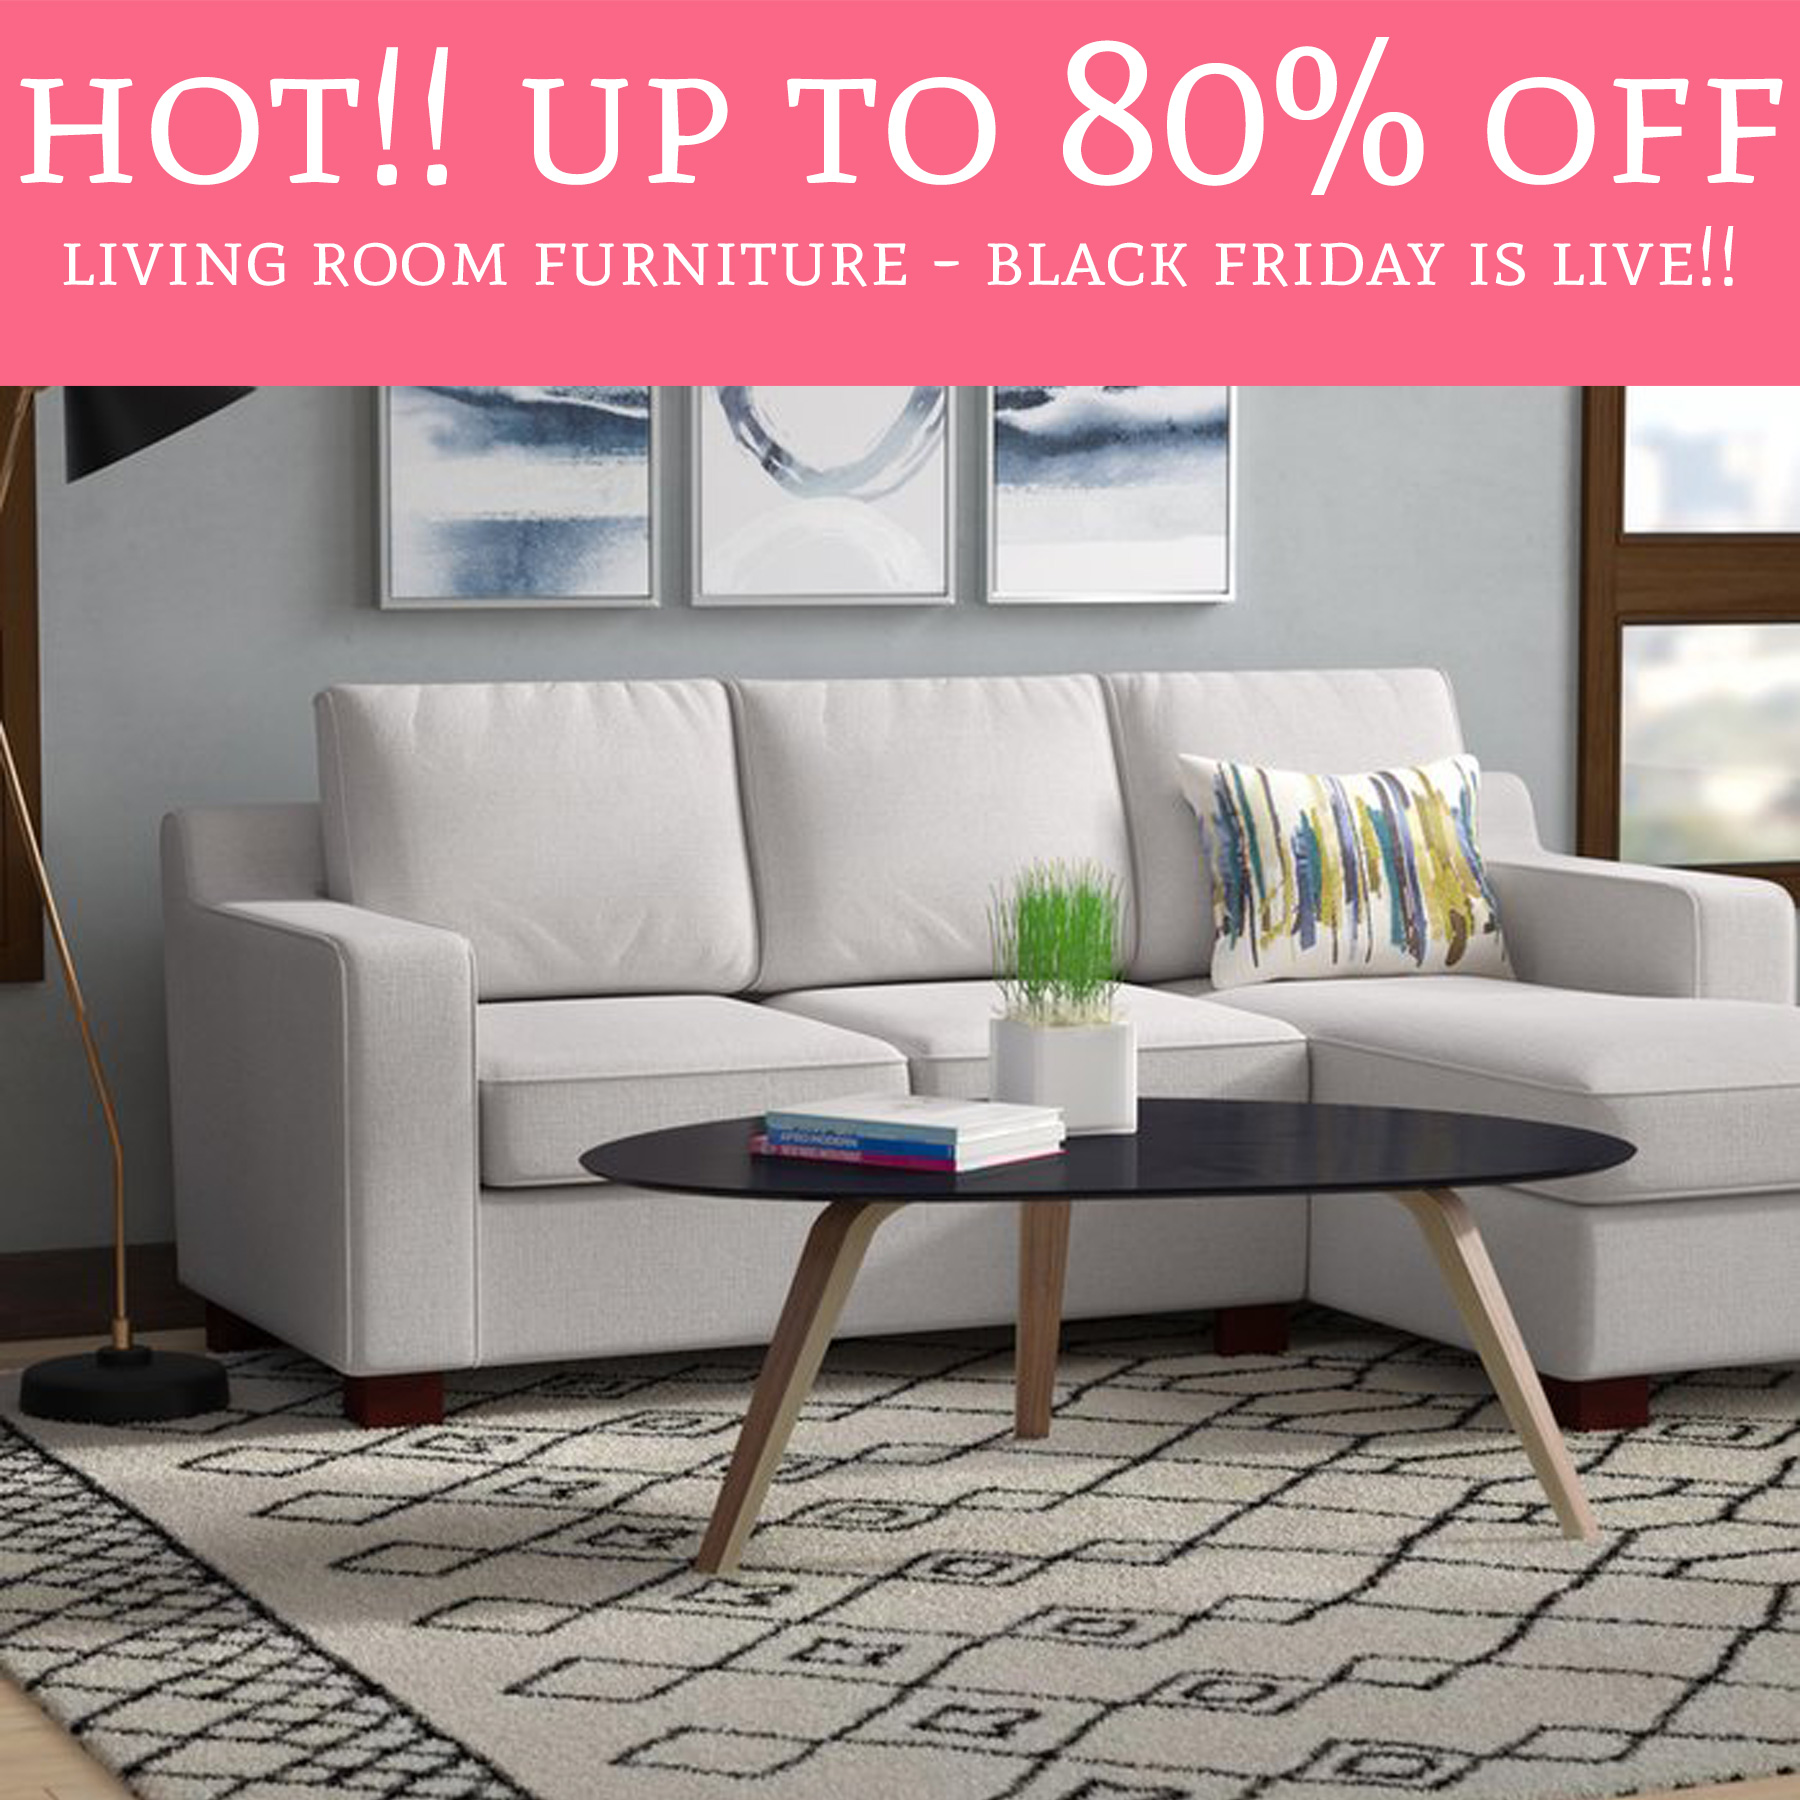 Black friday is live up to 80 off living room furniture deal hunting babe